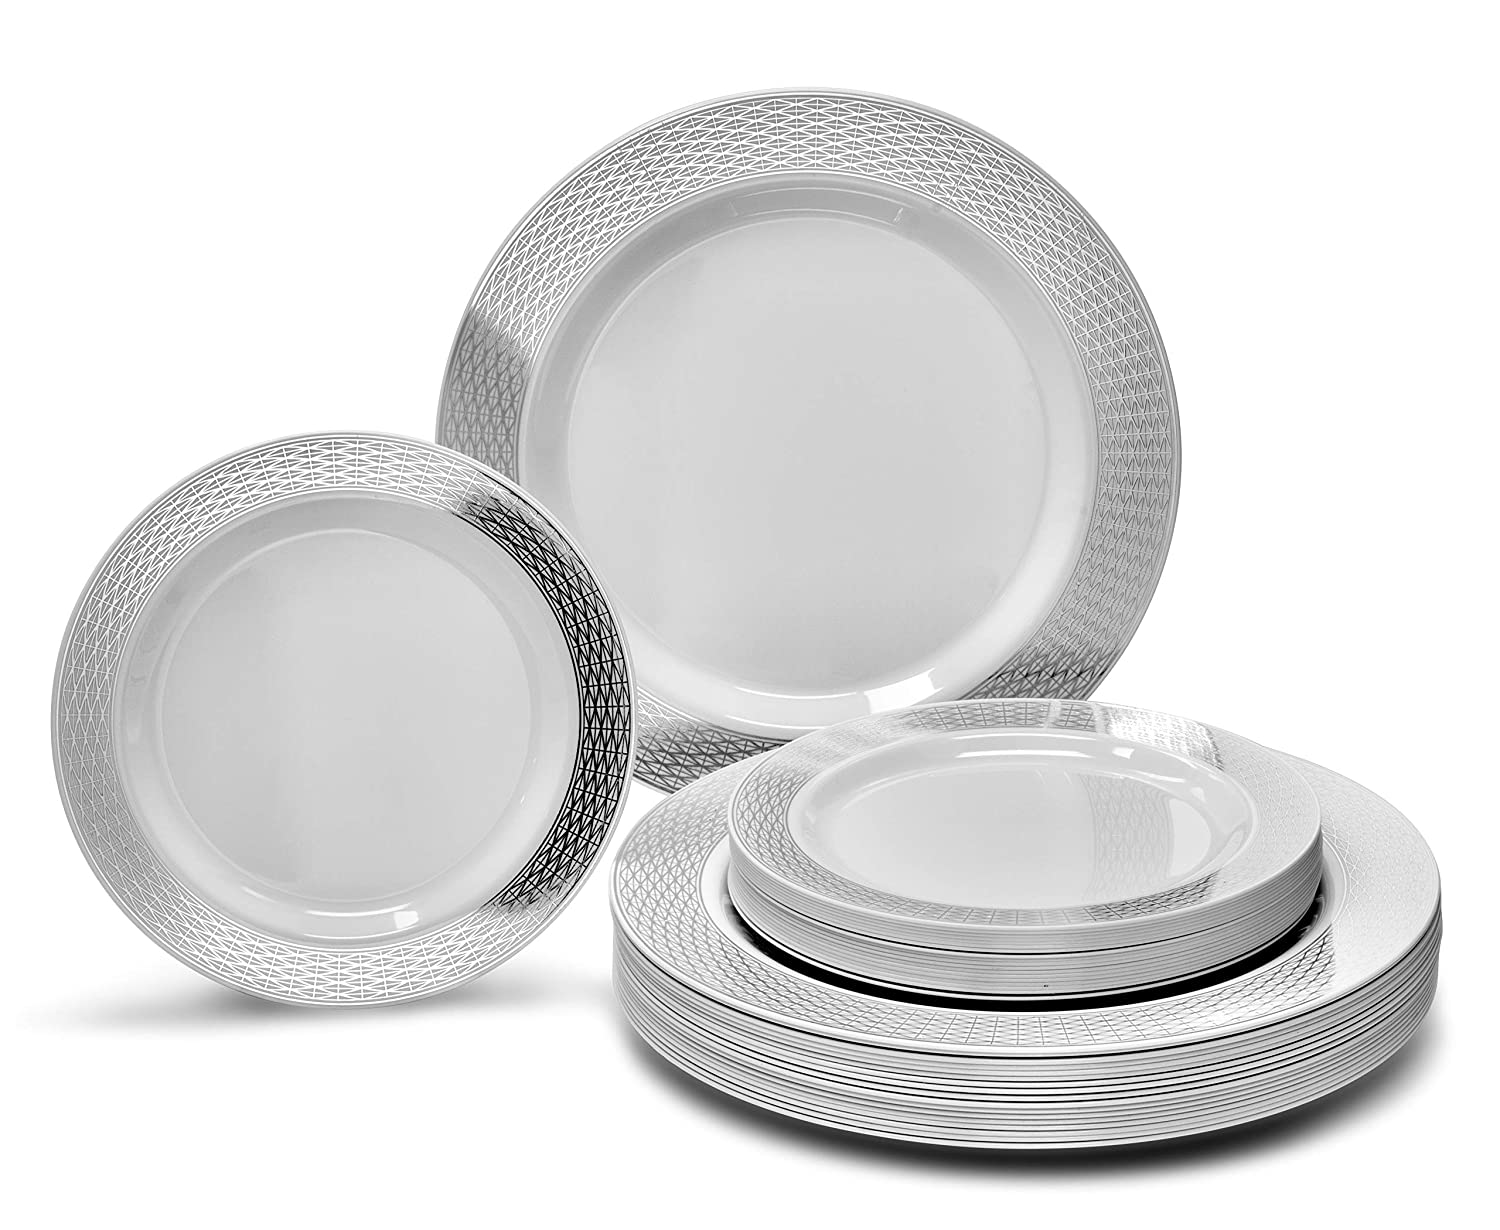 """"""" OCCASIONS"""" 120 Piece / 60 guest Disposable Japanese Style/Sushi Plastic Plates Set - 60 x Dinner + 60 x Salad/Dessert Plate (Asia, White)"""